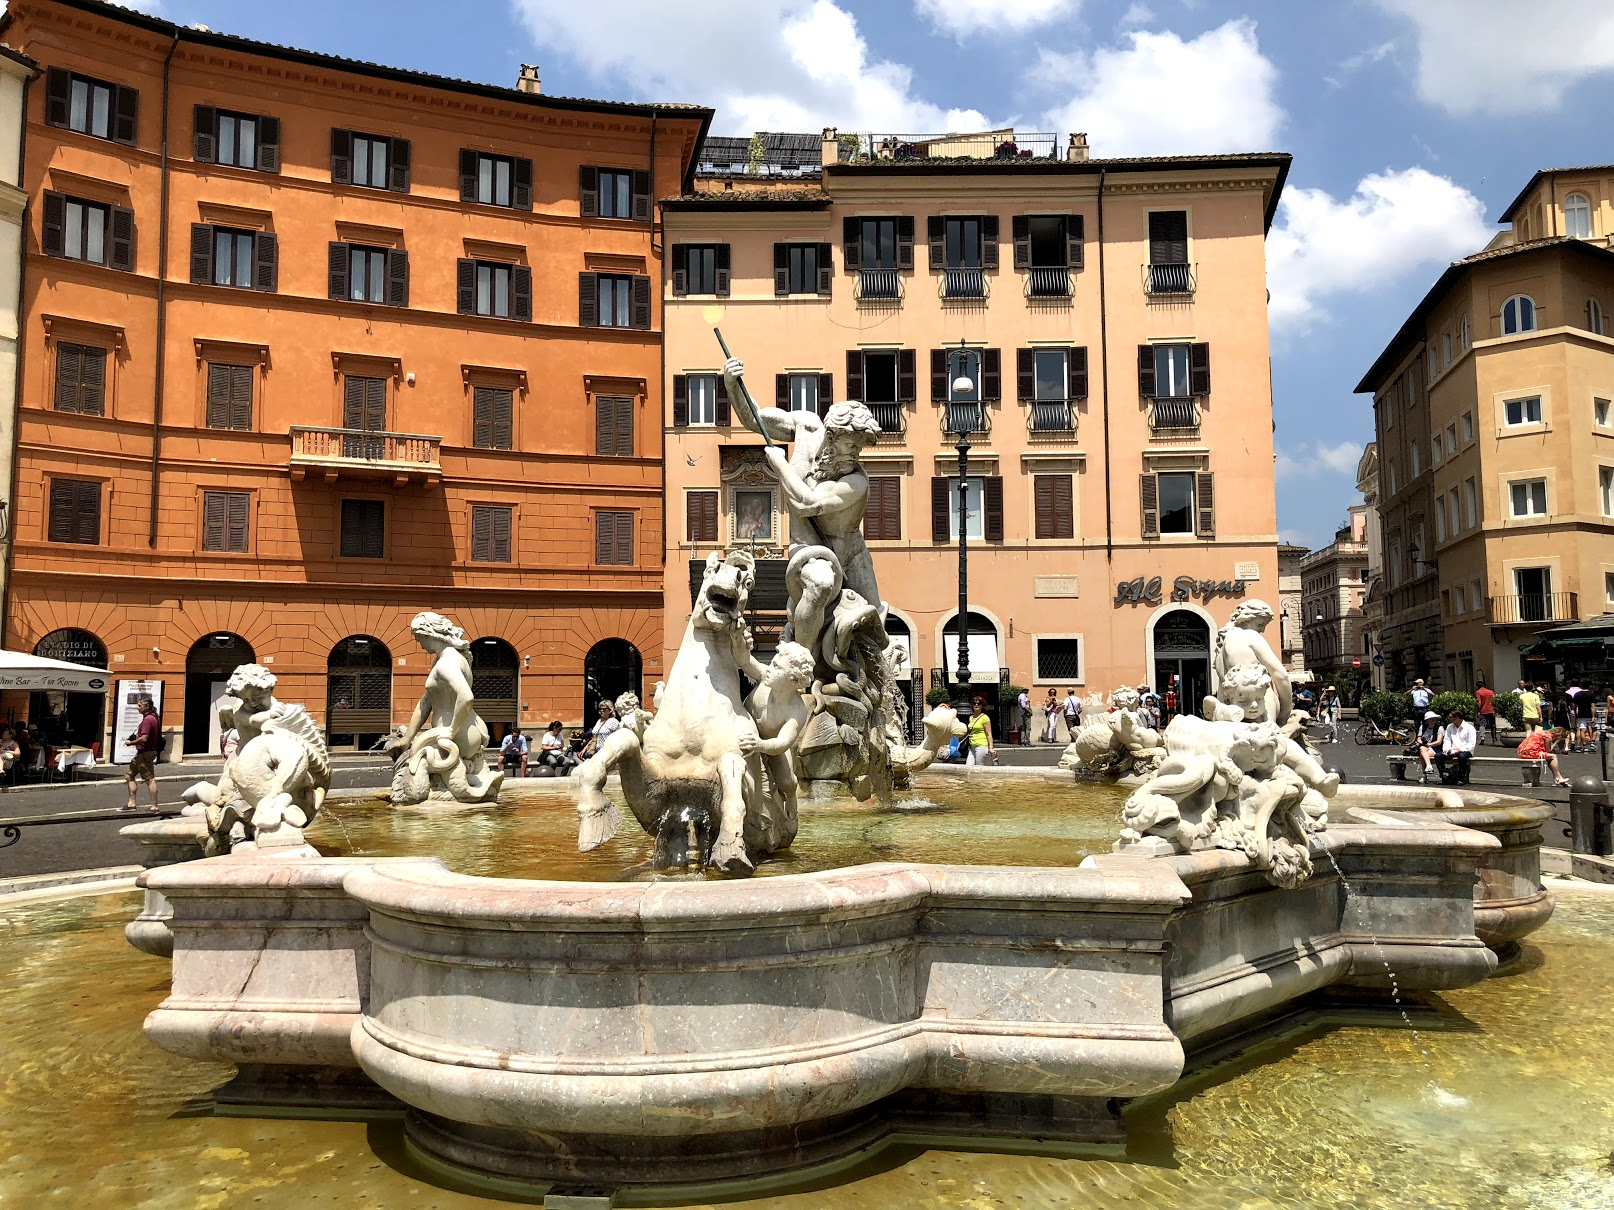 Fontana de Nettuno, Piazza Navona, Rome   Some inspiration for this fountain also came from the Trevi Fountain, also in Rome